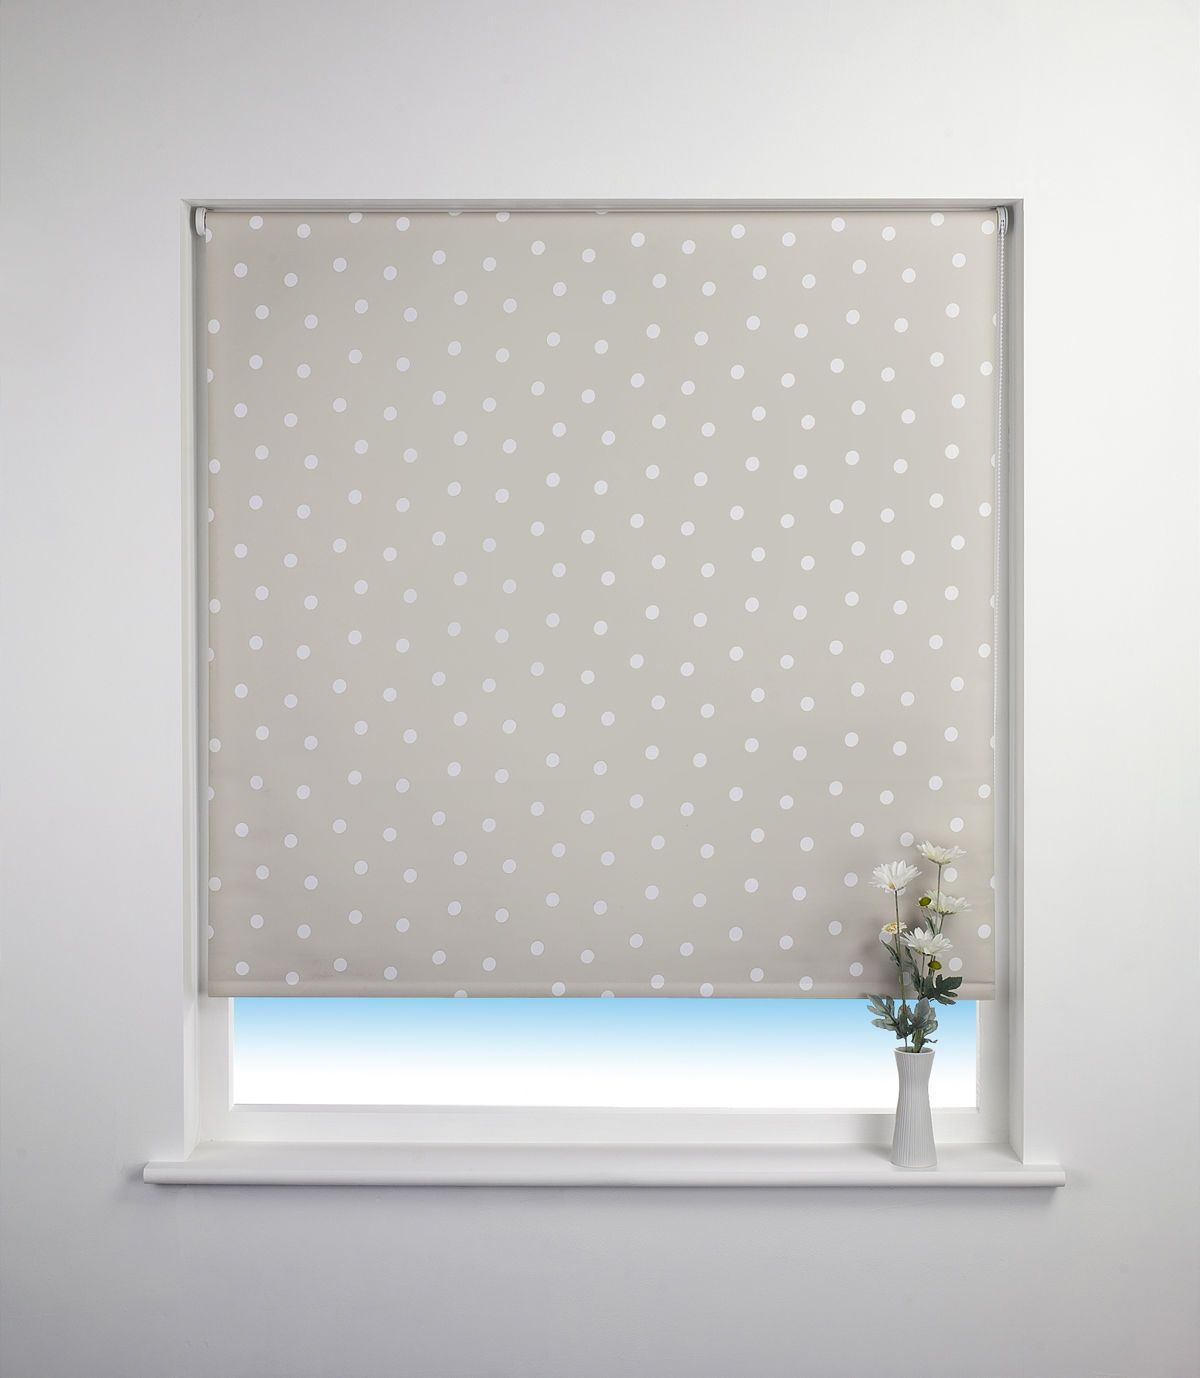 The Modern Baby Farg Form Moln Clouds Blackout Roller Blind